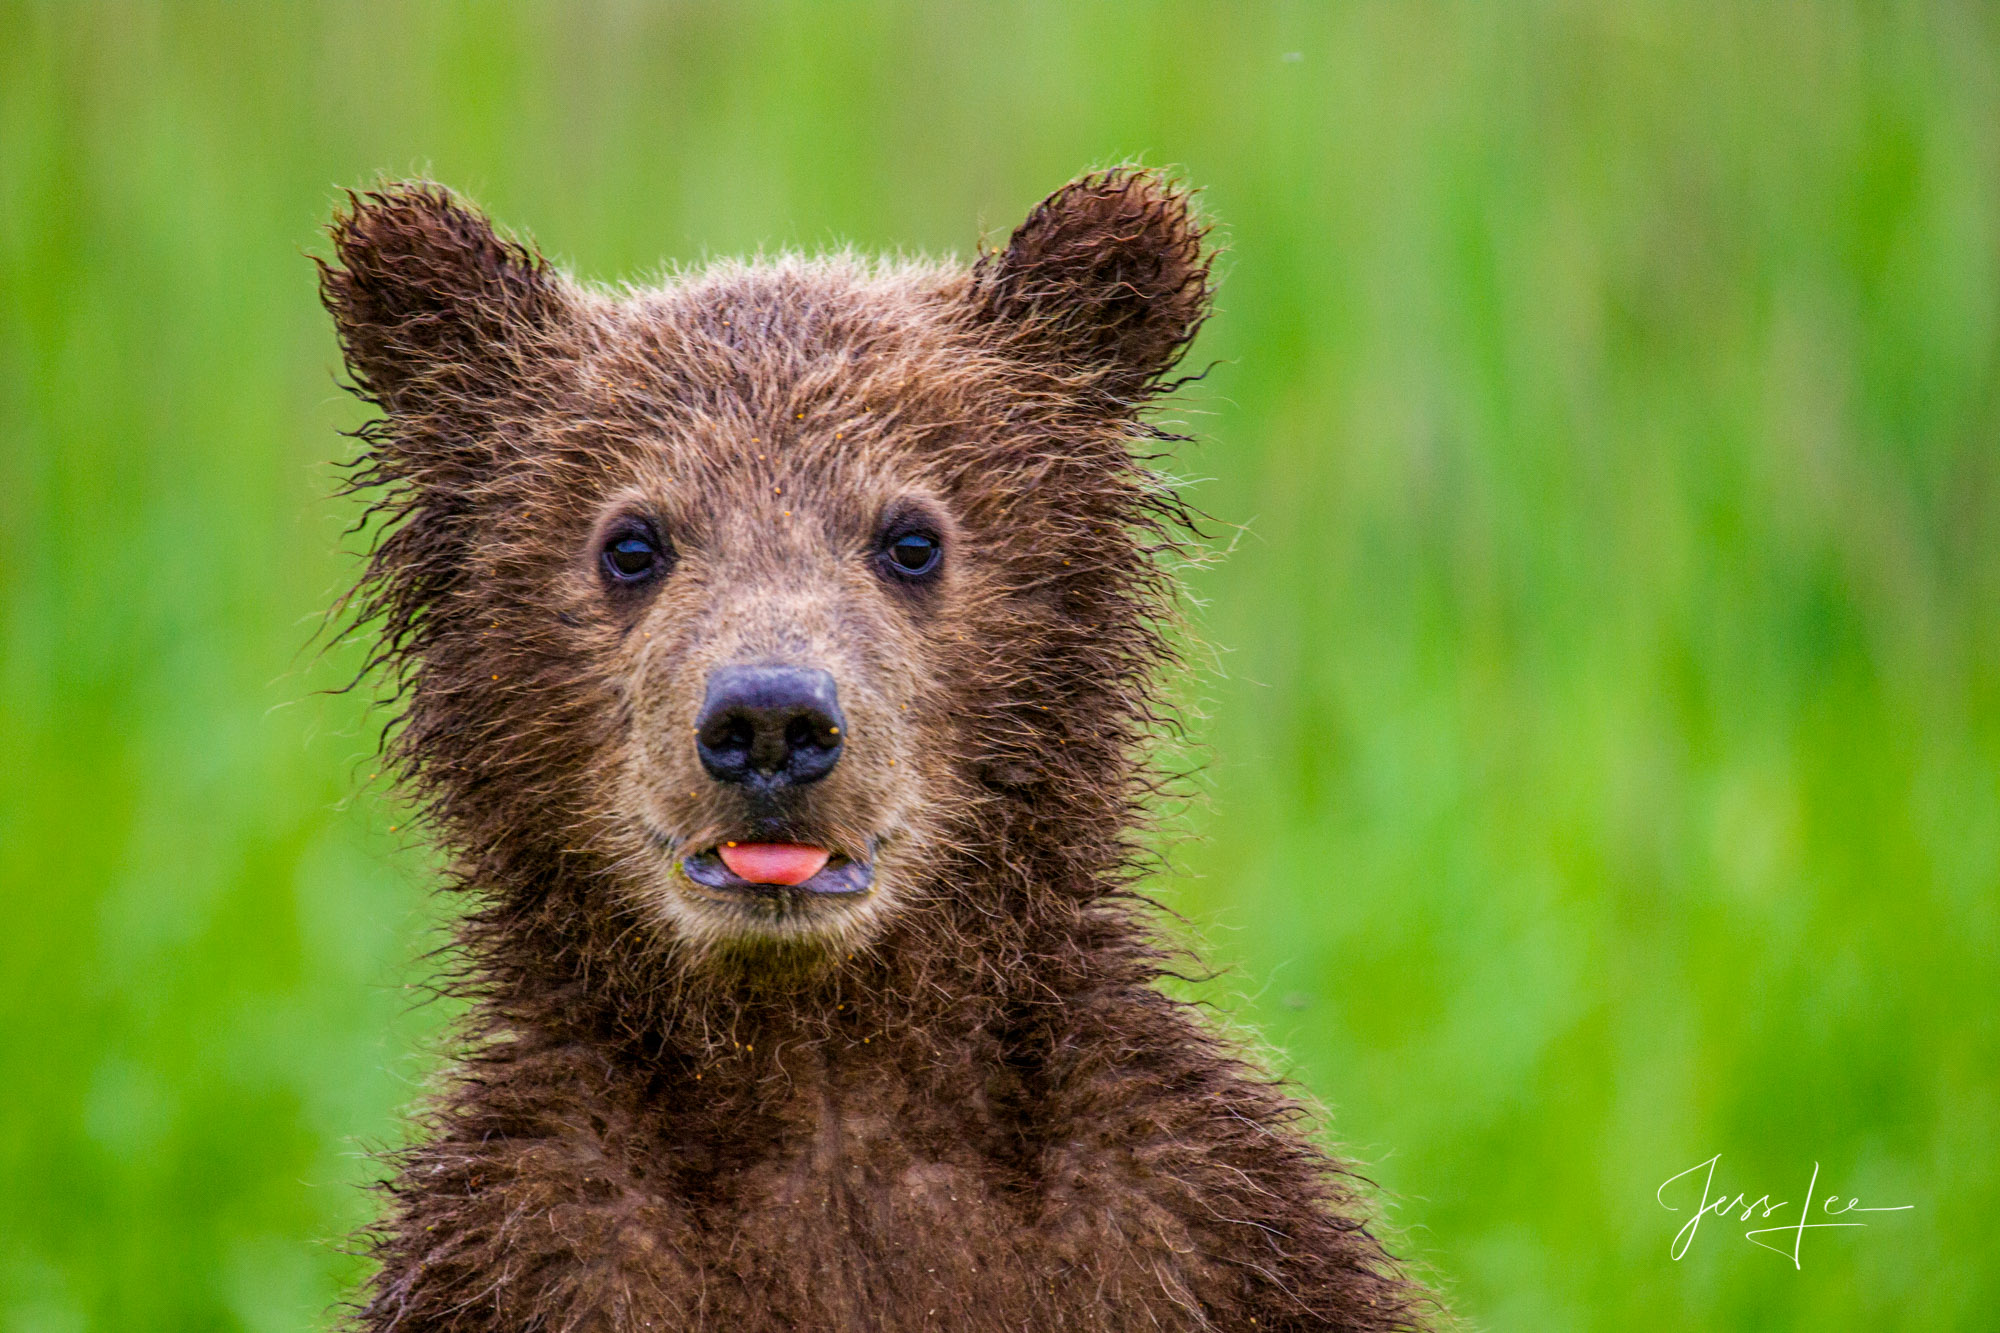 Cubs will be cubs. Alaska Brown Bear Photography Limited edition of 800 prints. These Grizzly bear fine art wildlife photographs...